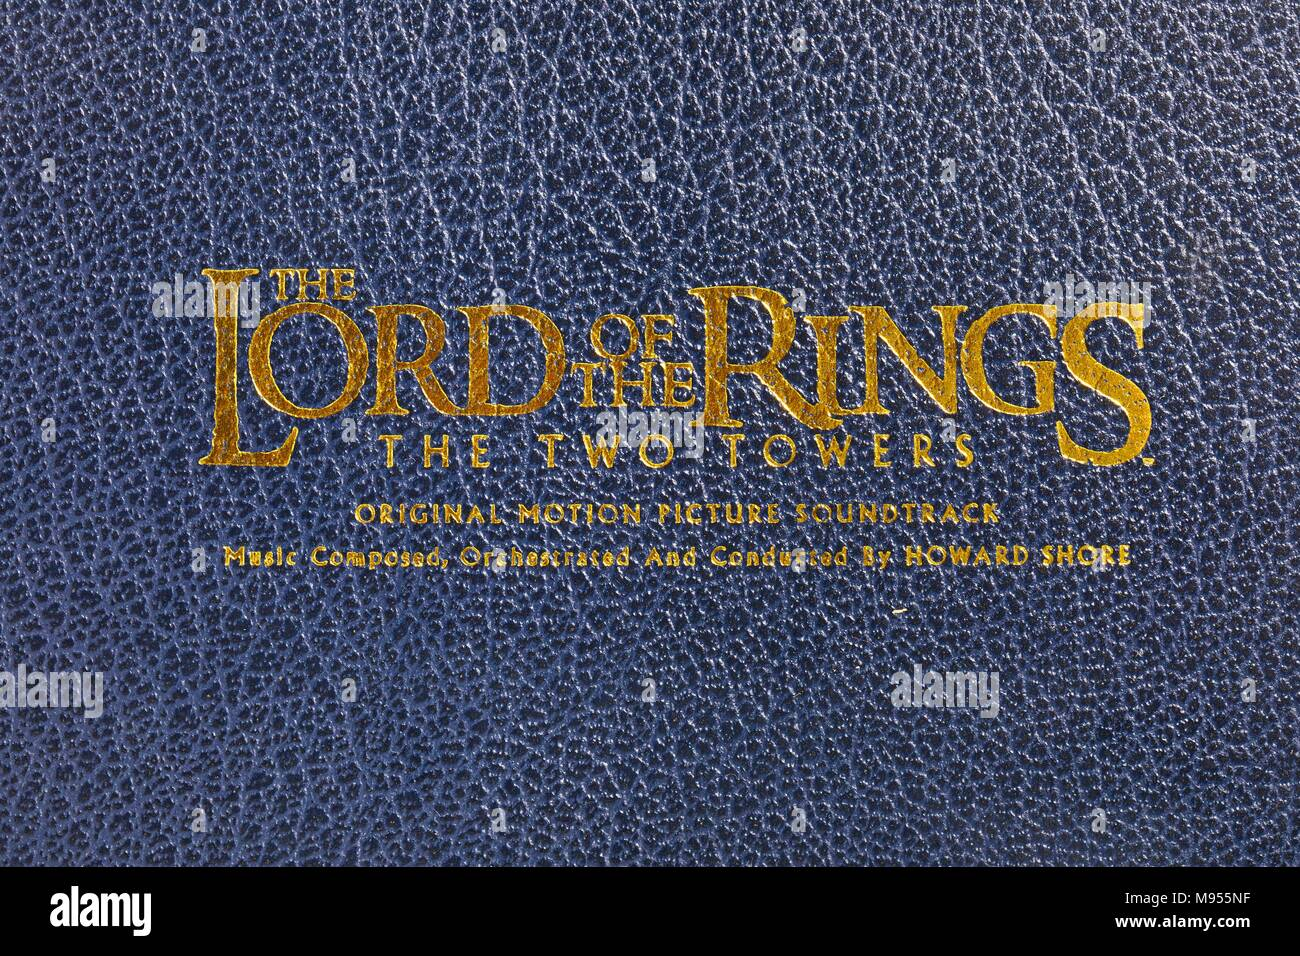 The Lord of The Ring soundtrack - Stock Image